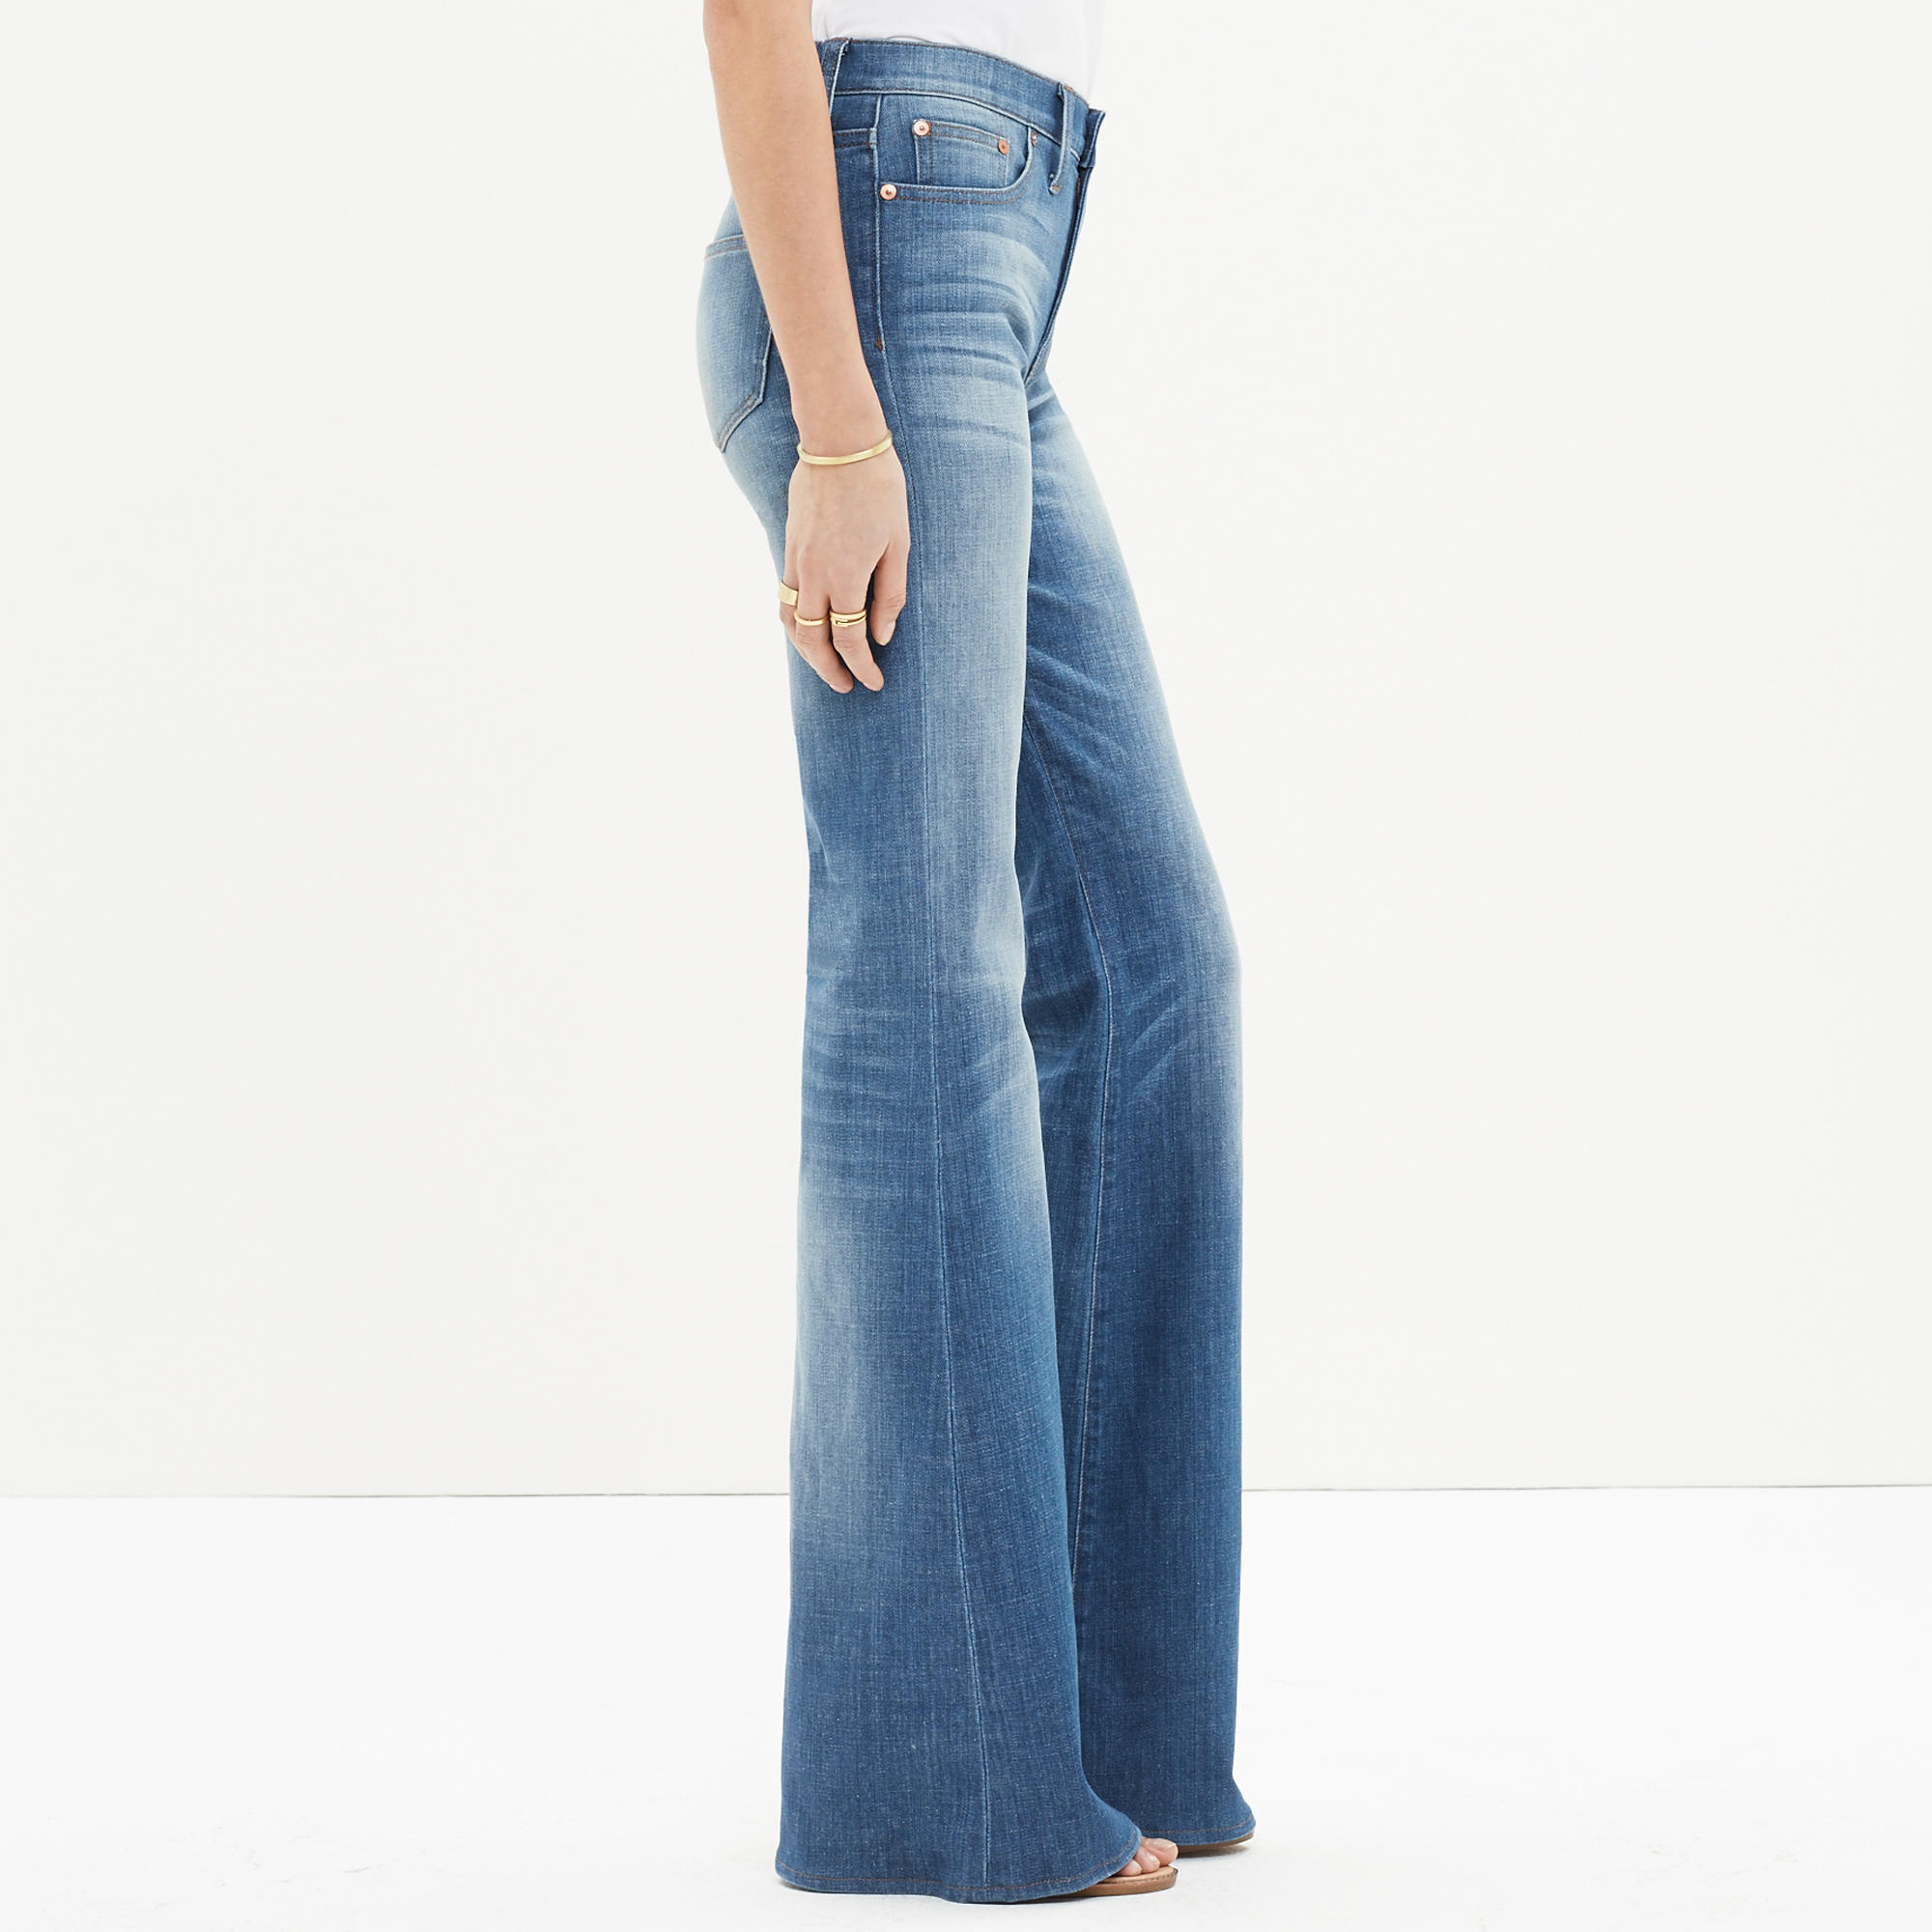 Wide Leg Jeans Size 16 - Most Popular Jeans 2017